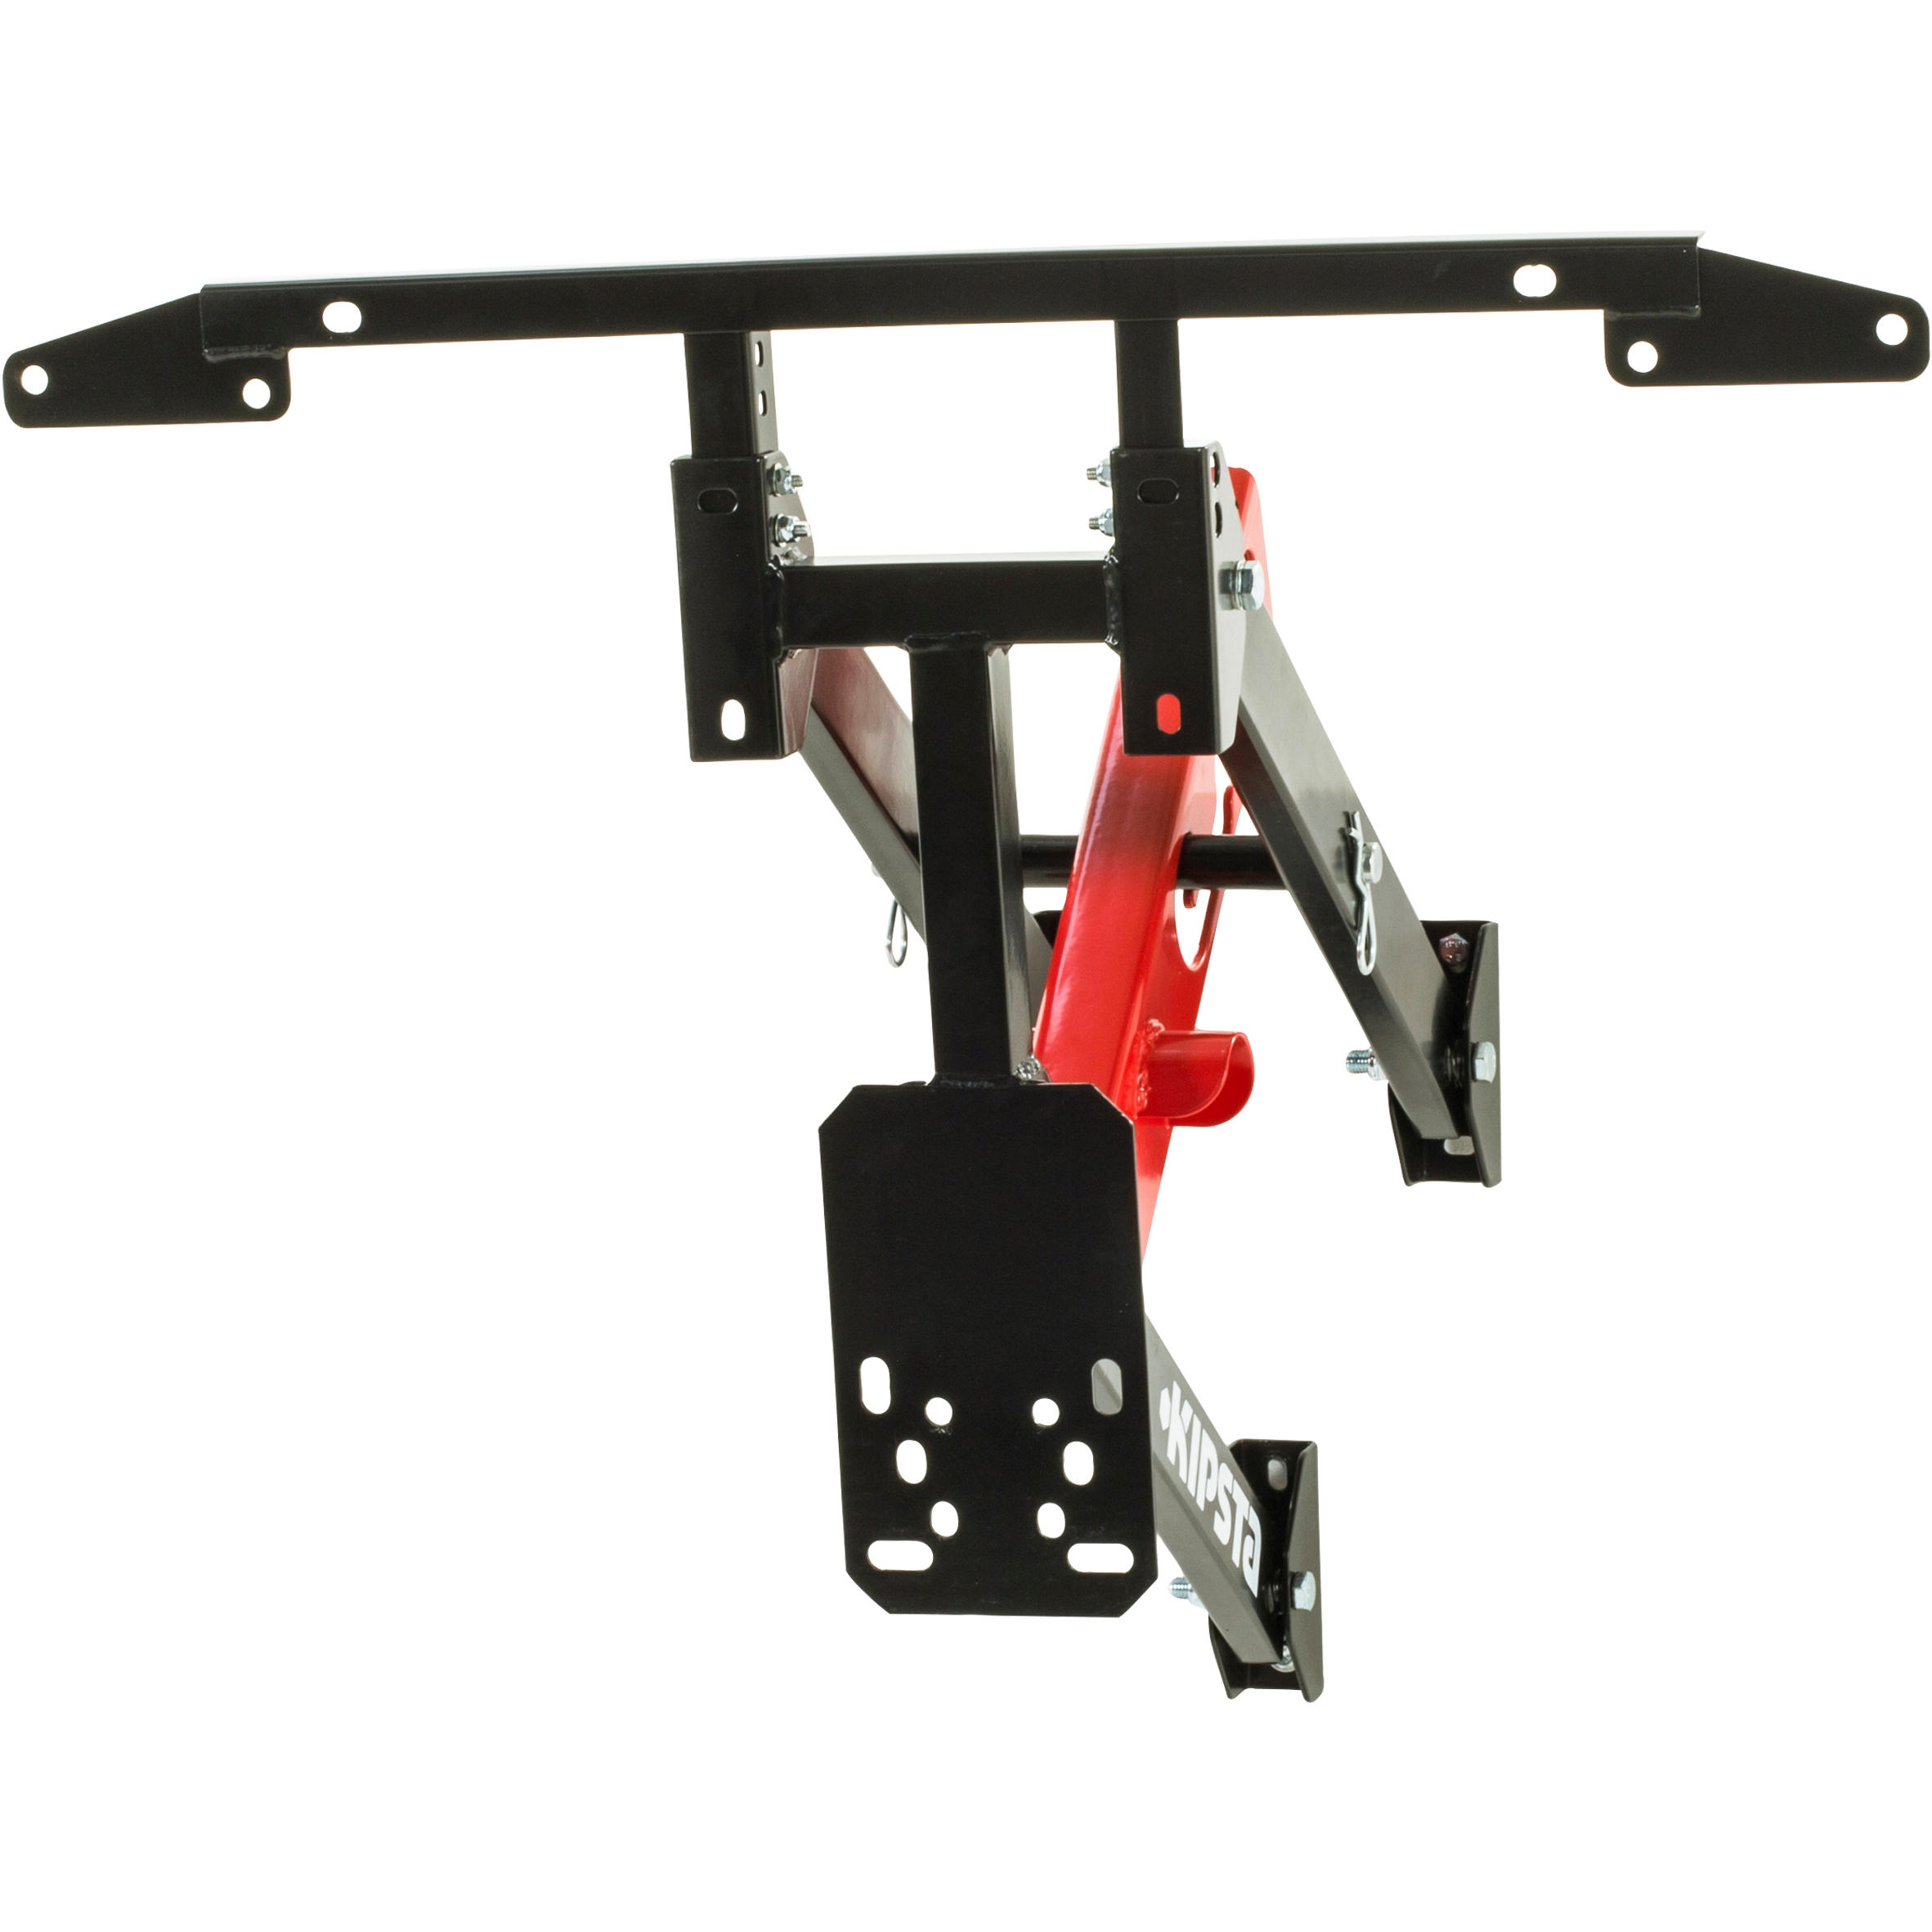 Basketball Wall Attachment For Backboards B200/B300/B700. 3 play heights.